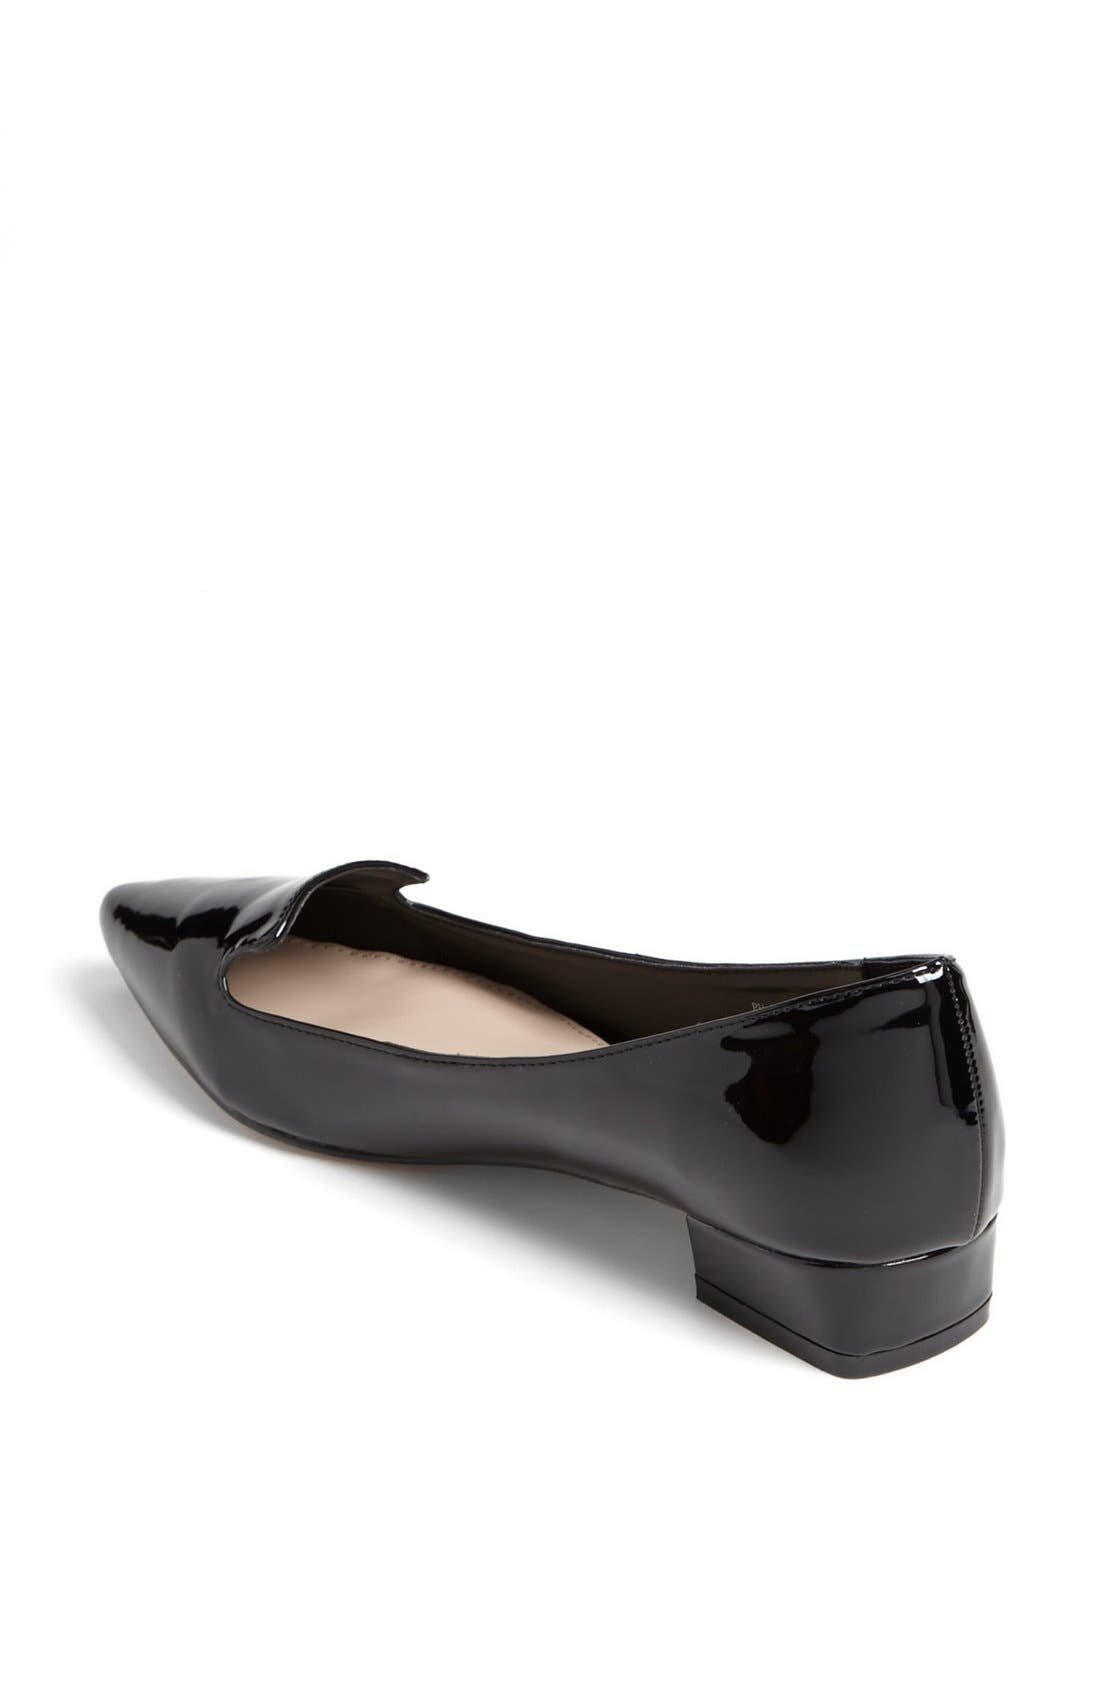 Alternate Image 2  - Carvela Kurt Geiger 'Lizzie' Pointed Toe Flat